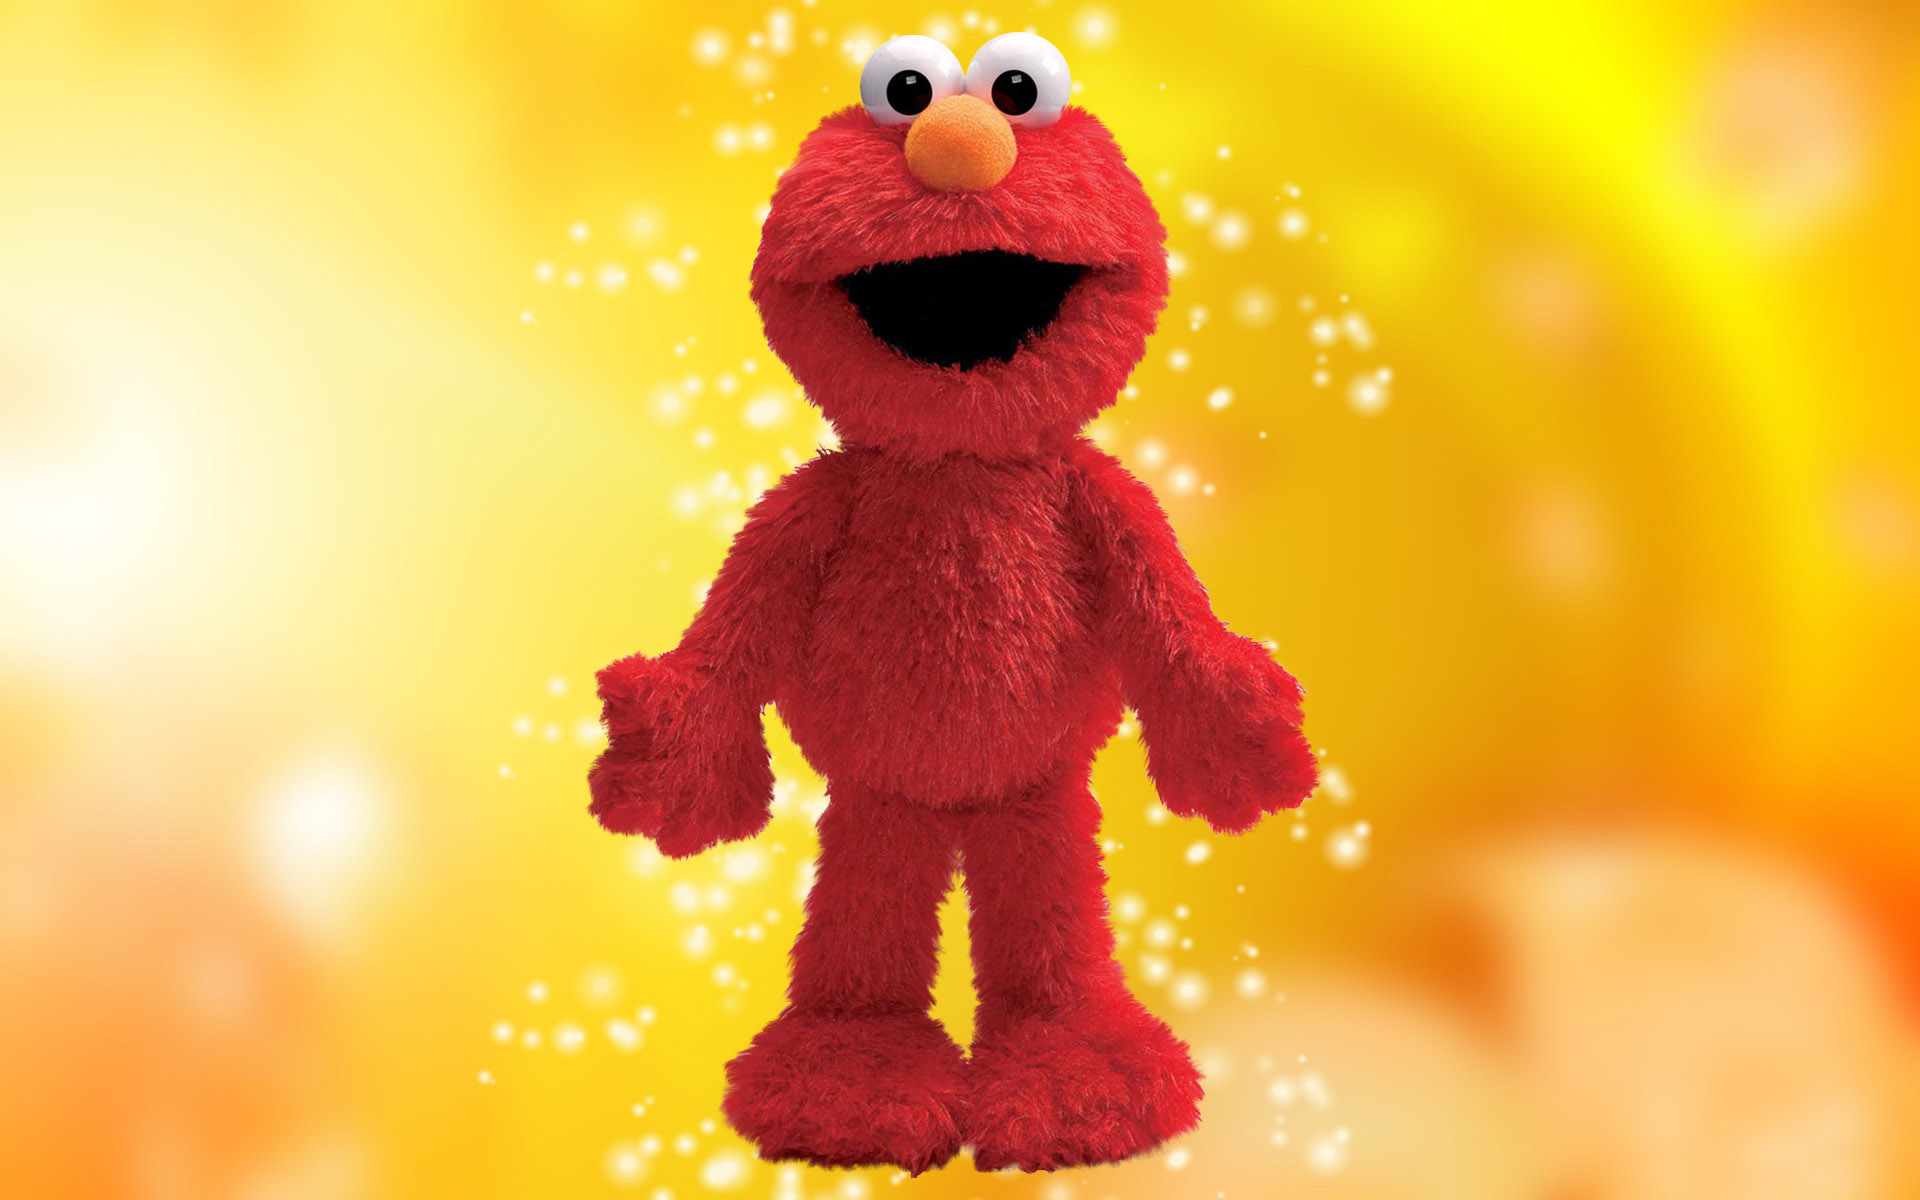 Wallpaperwiki Elmo Wallpapers HD Free Download PIC WPB006737